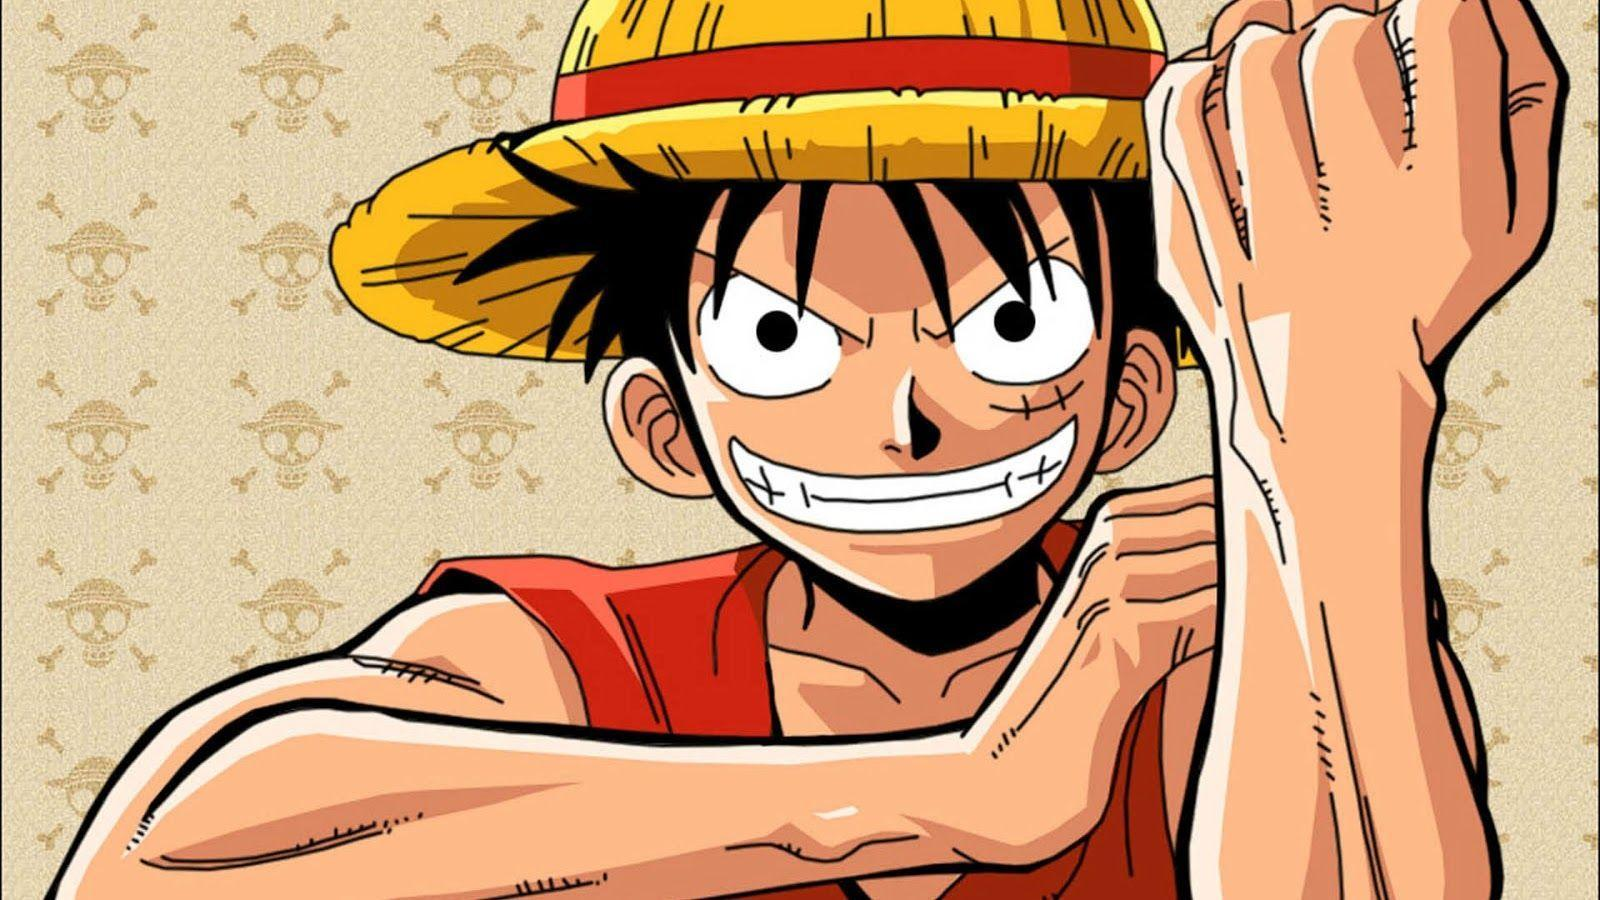 OnePiece Monkey D Luffy Wallpapers HD ~ One Piece Wallpapers